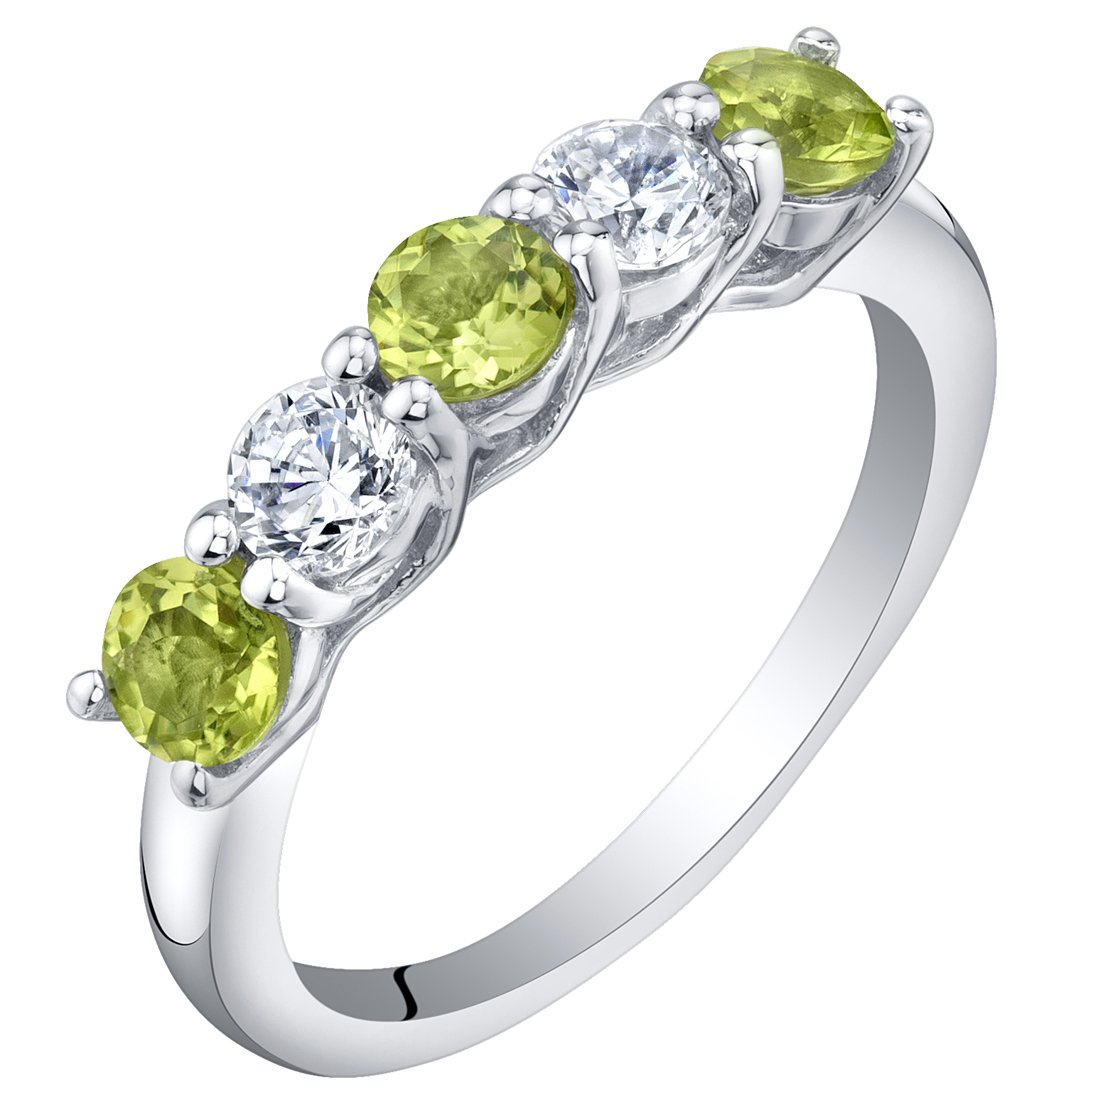 Sterling Silver Peridot Five-Stone Trellis Ring Band Size 7